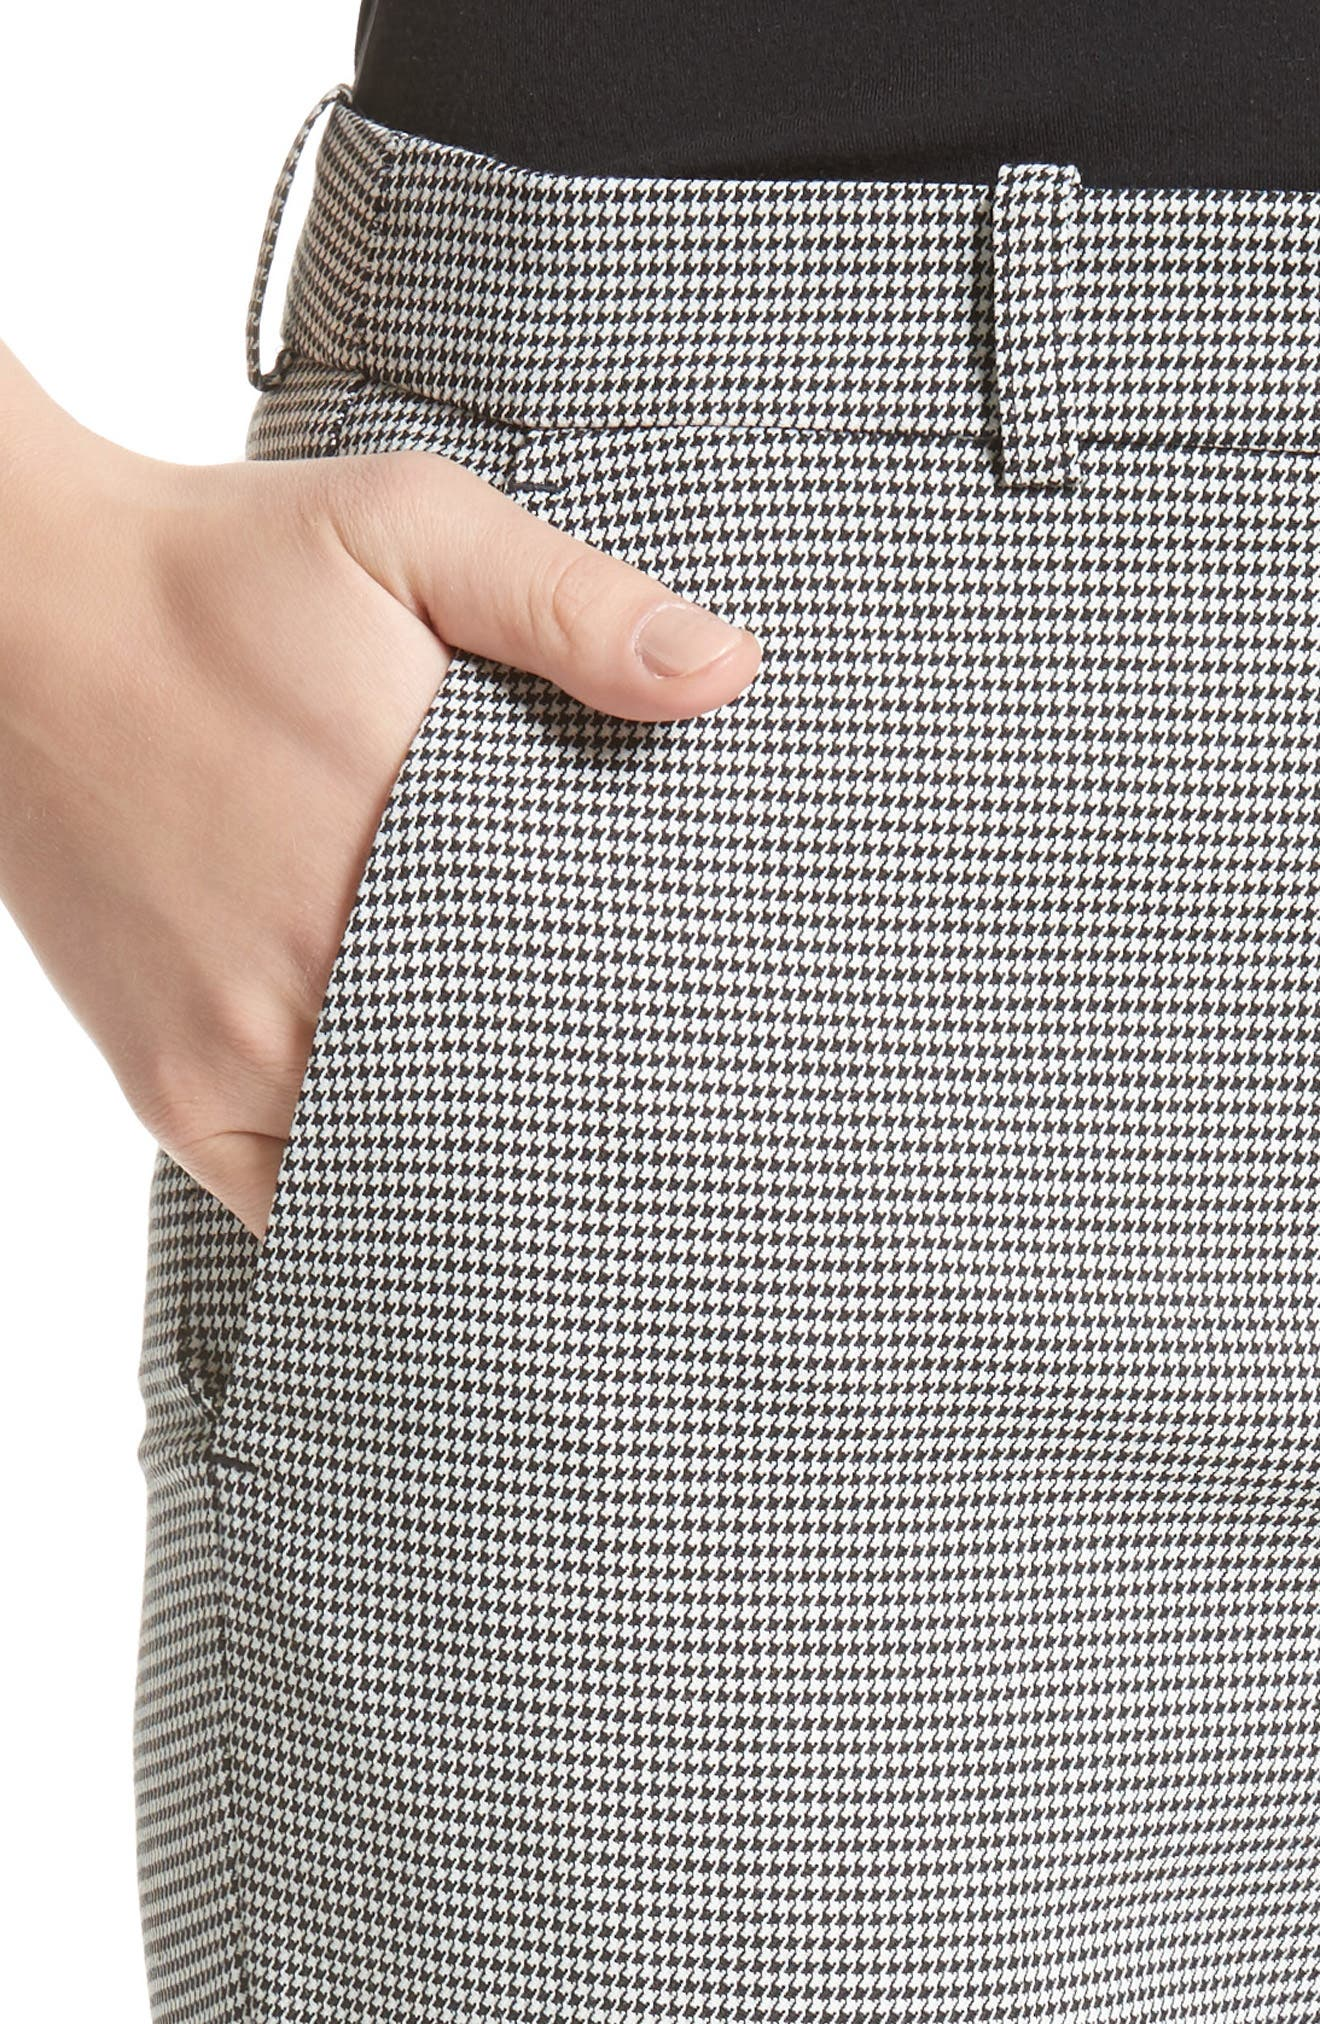 Samantha Houndstooth Pants,                             Alternate thumbnail 7, color,                             Black/ White